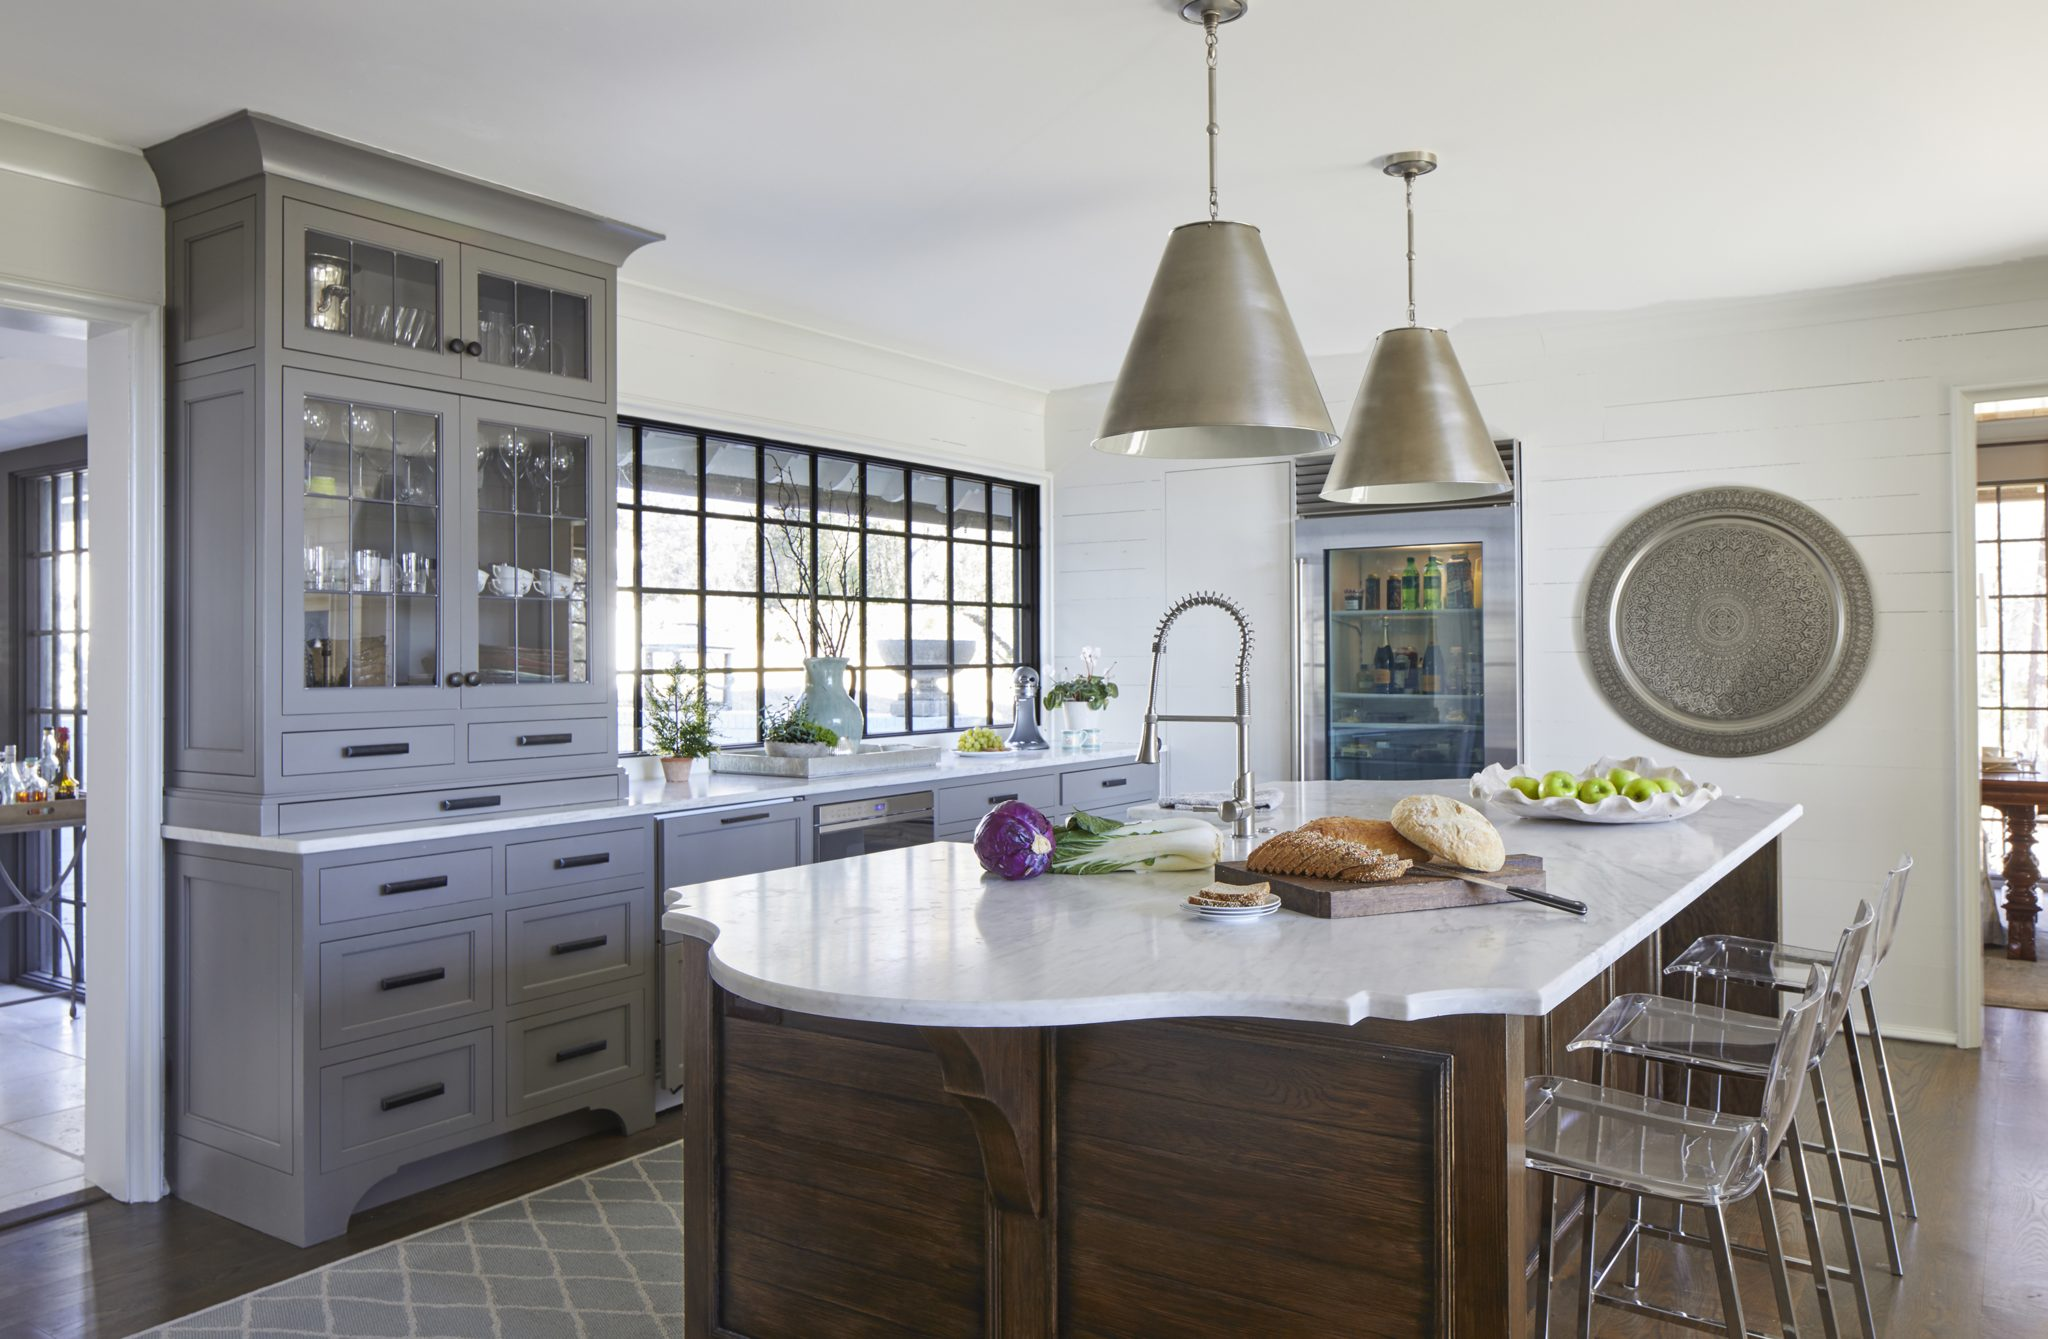 The kitchen design showcases a pared-down aesthetic that still has personality. Custom cabinets from Heath Hughes, Inc, stone countertops from Pacific Shore Stones, and Ashley Norton hardware from Brandino Brass set the tone; the metal pendant lights are by Visual Comfort.The Sub-Zero refrigerator and Wolfappliances offer functionality as well as beauty, while a hidden pantry brings additional storage and an unexpected element to the space.